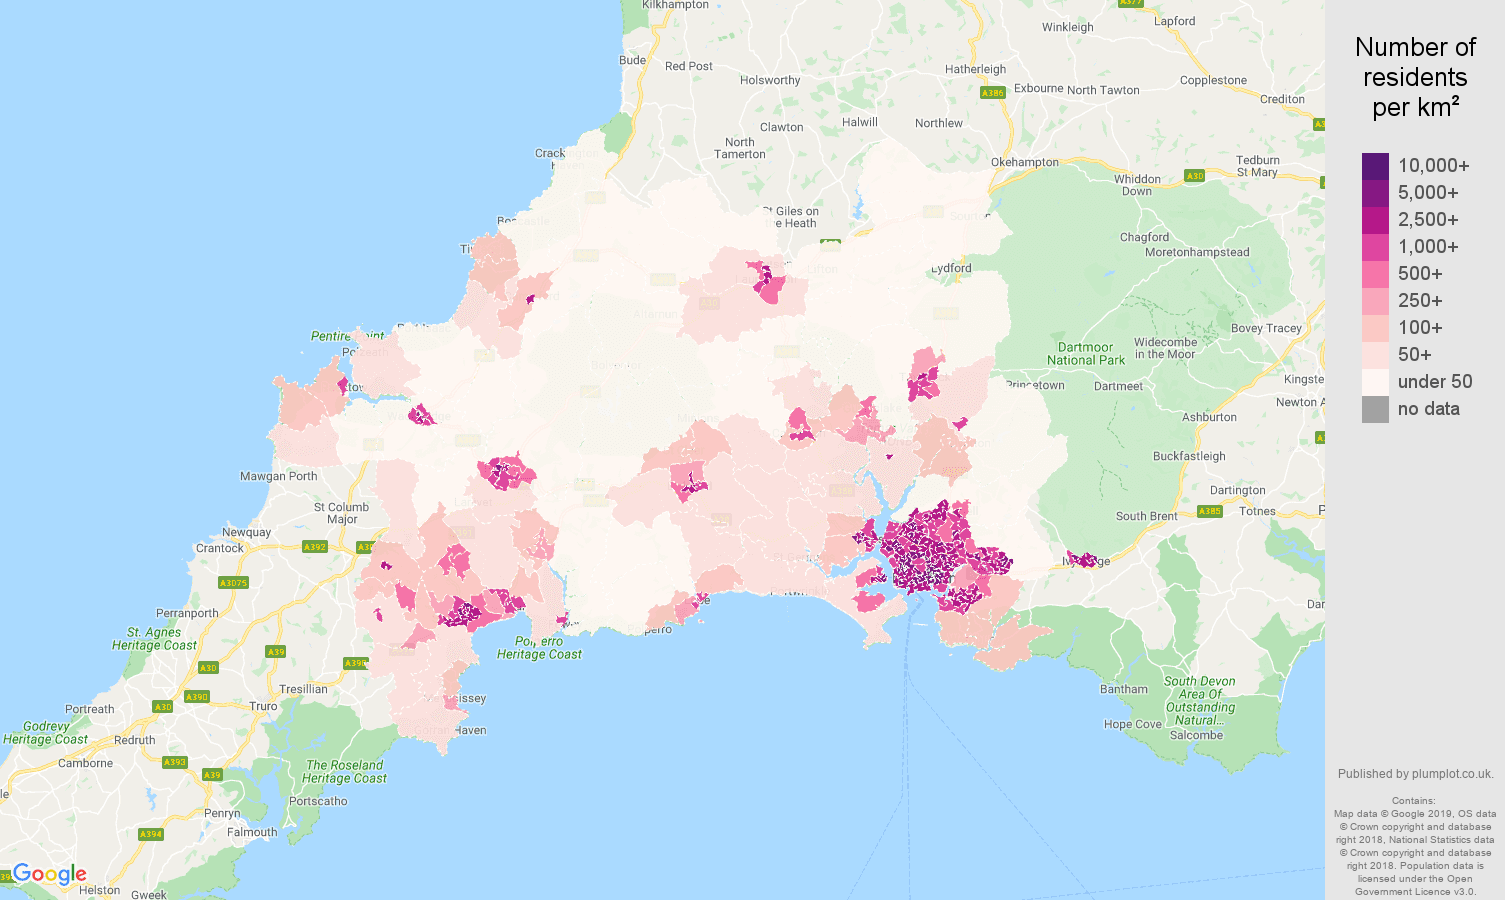 Plymouth population density map